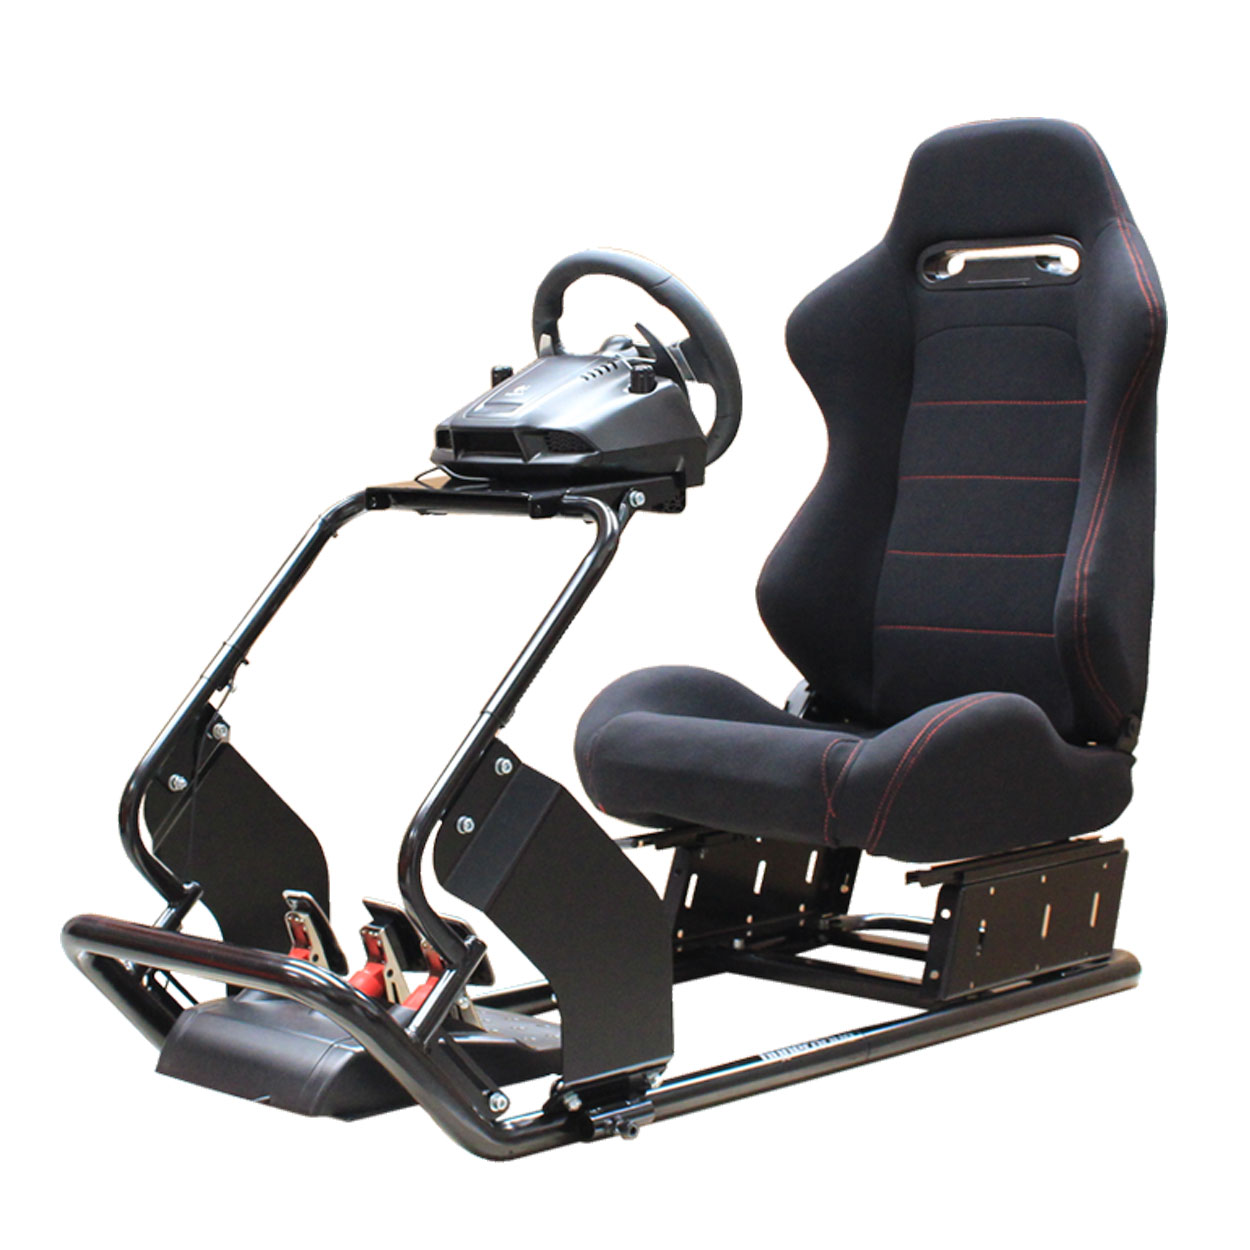 RACING SIMULATOR | D-RS 50-S2